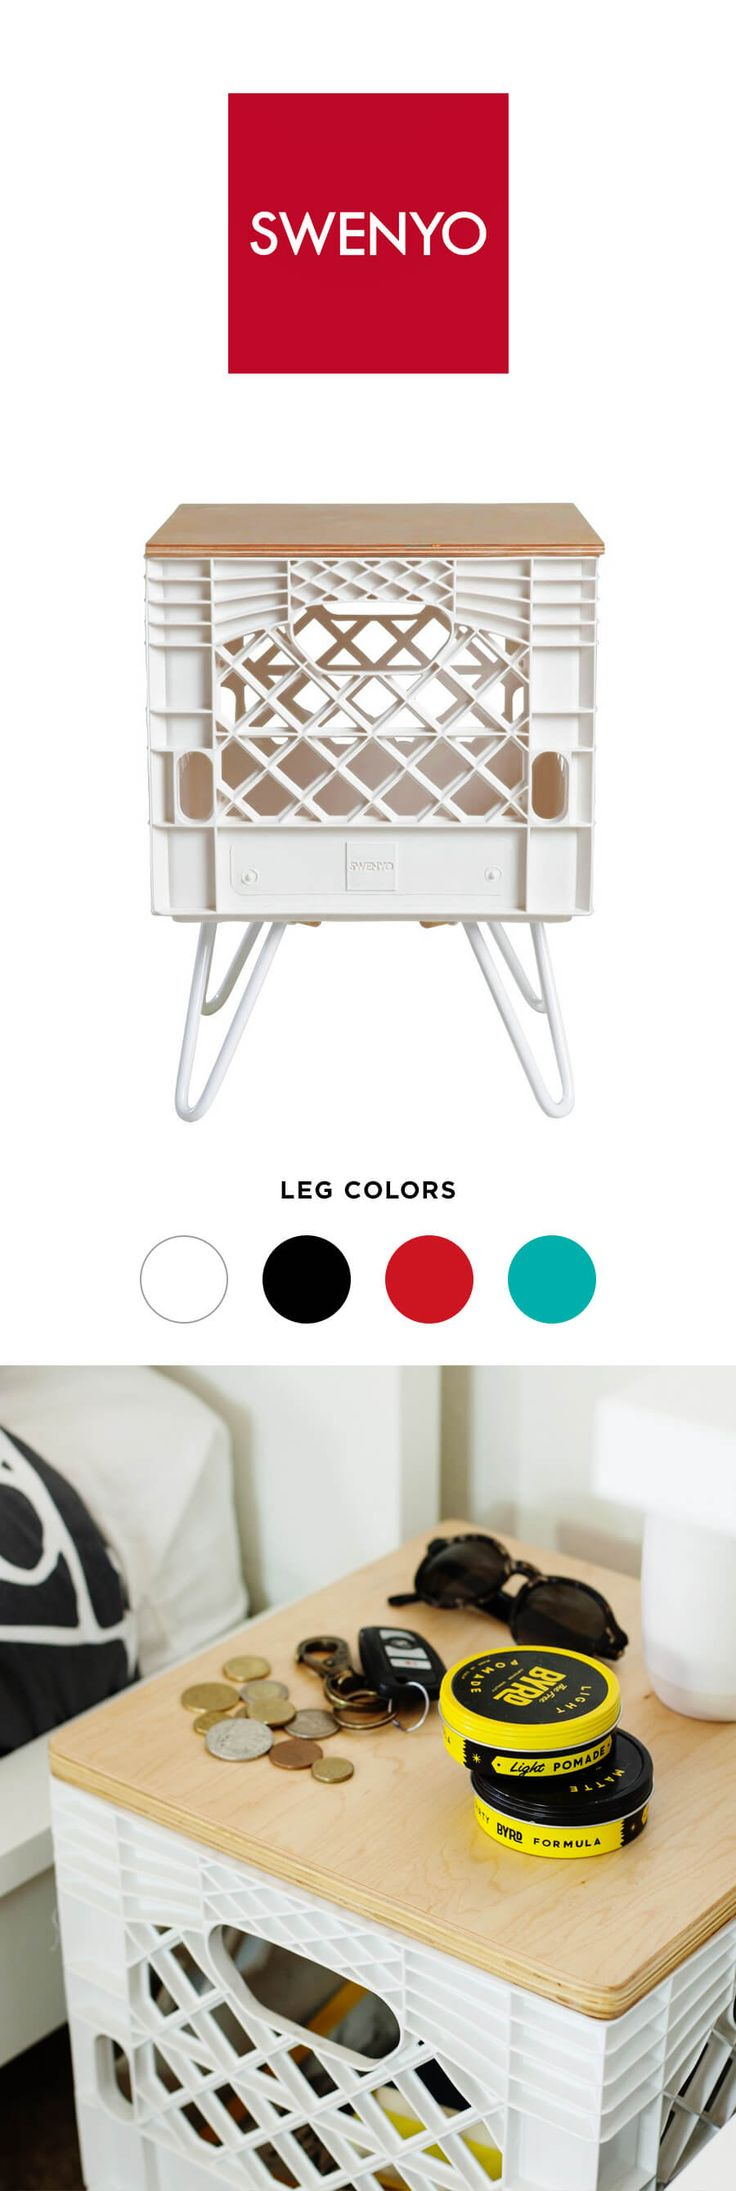 White Room Crate Nightstand by @swenyo. Choose from four different leg colors. #dormroom #office #homedecor #spon #swenyo